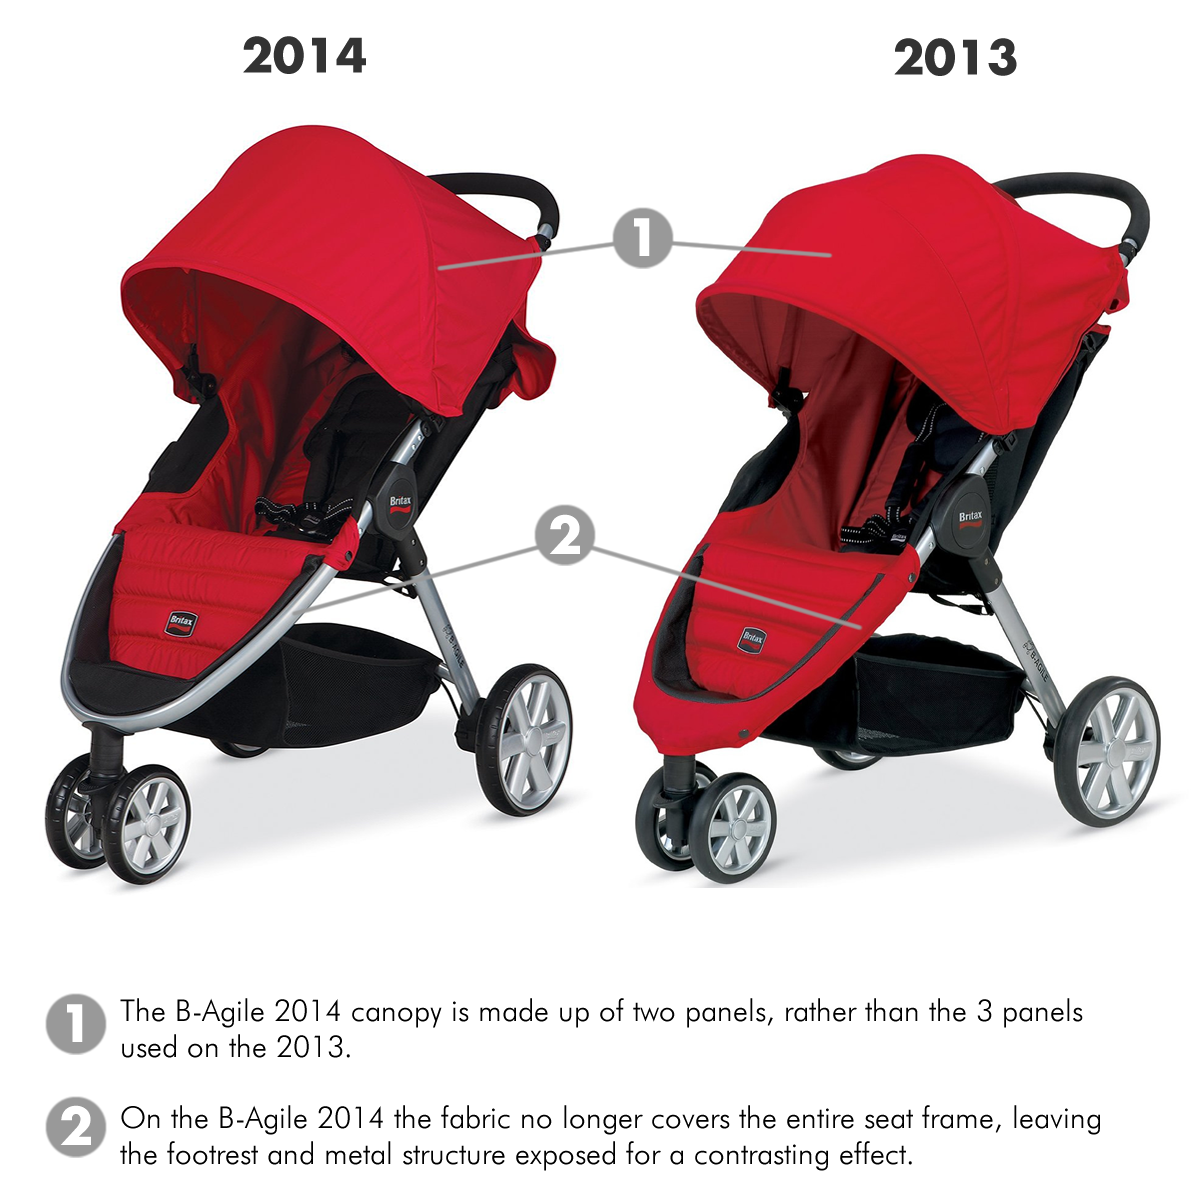 Whatu0027s the difference between the 2013 and 2014 B-Agile strollers? Click here to find out!  sc 1 st  Albee Baby & Britax B-Agile 2014 Stroller Black